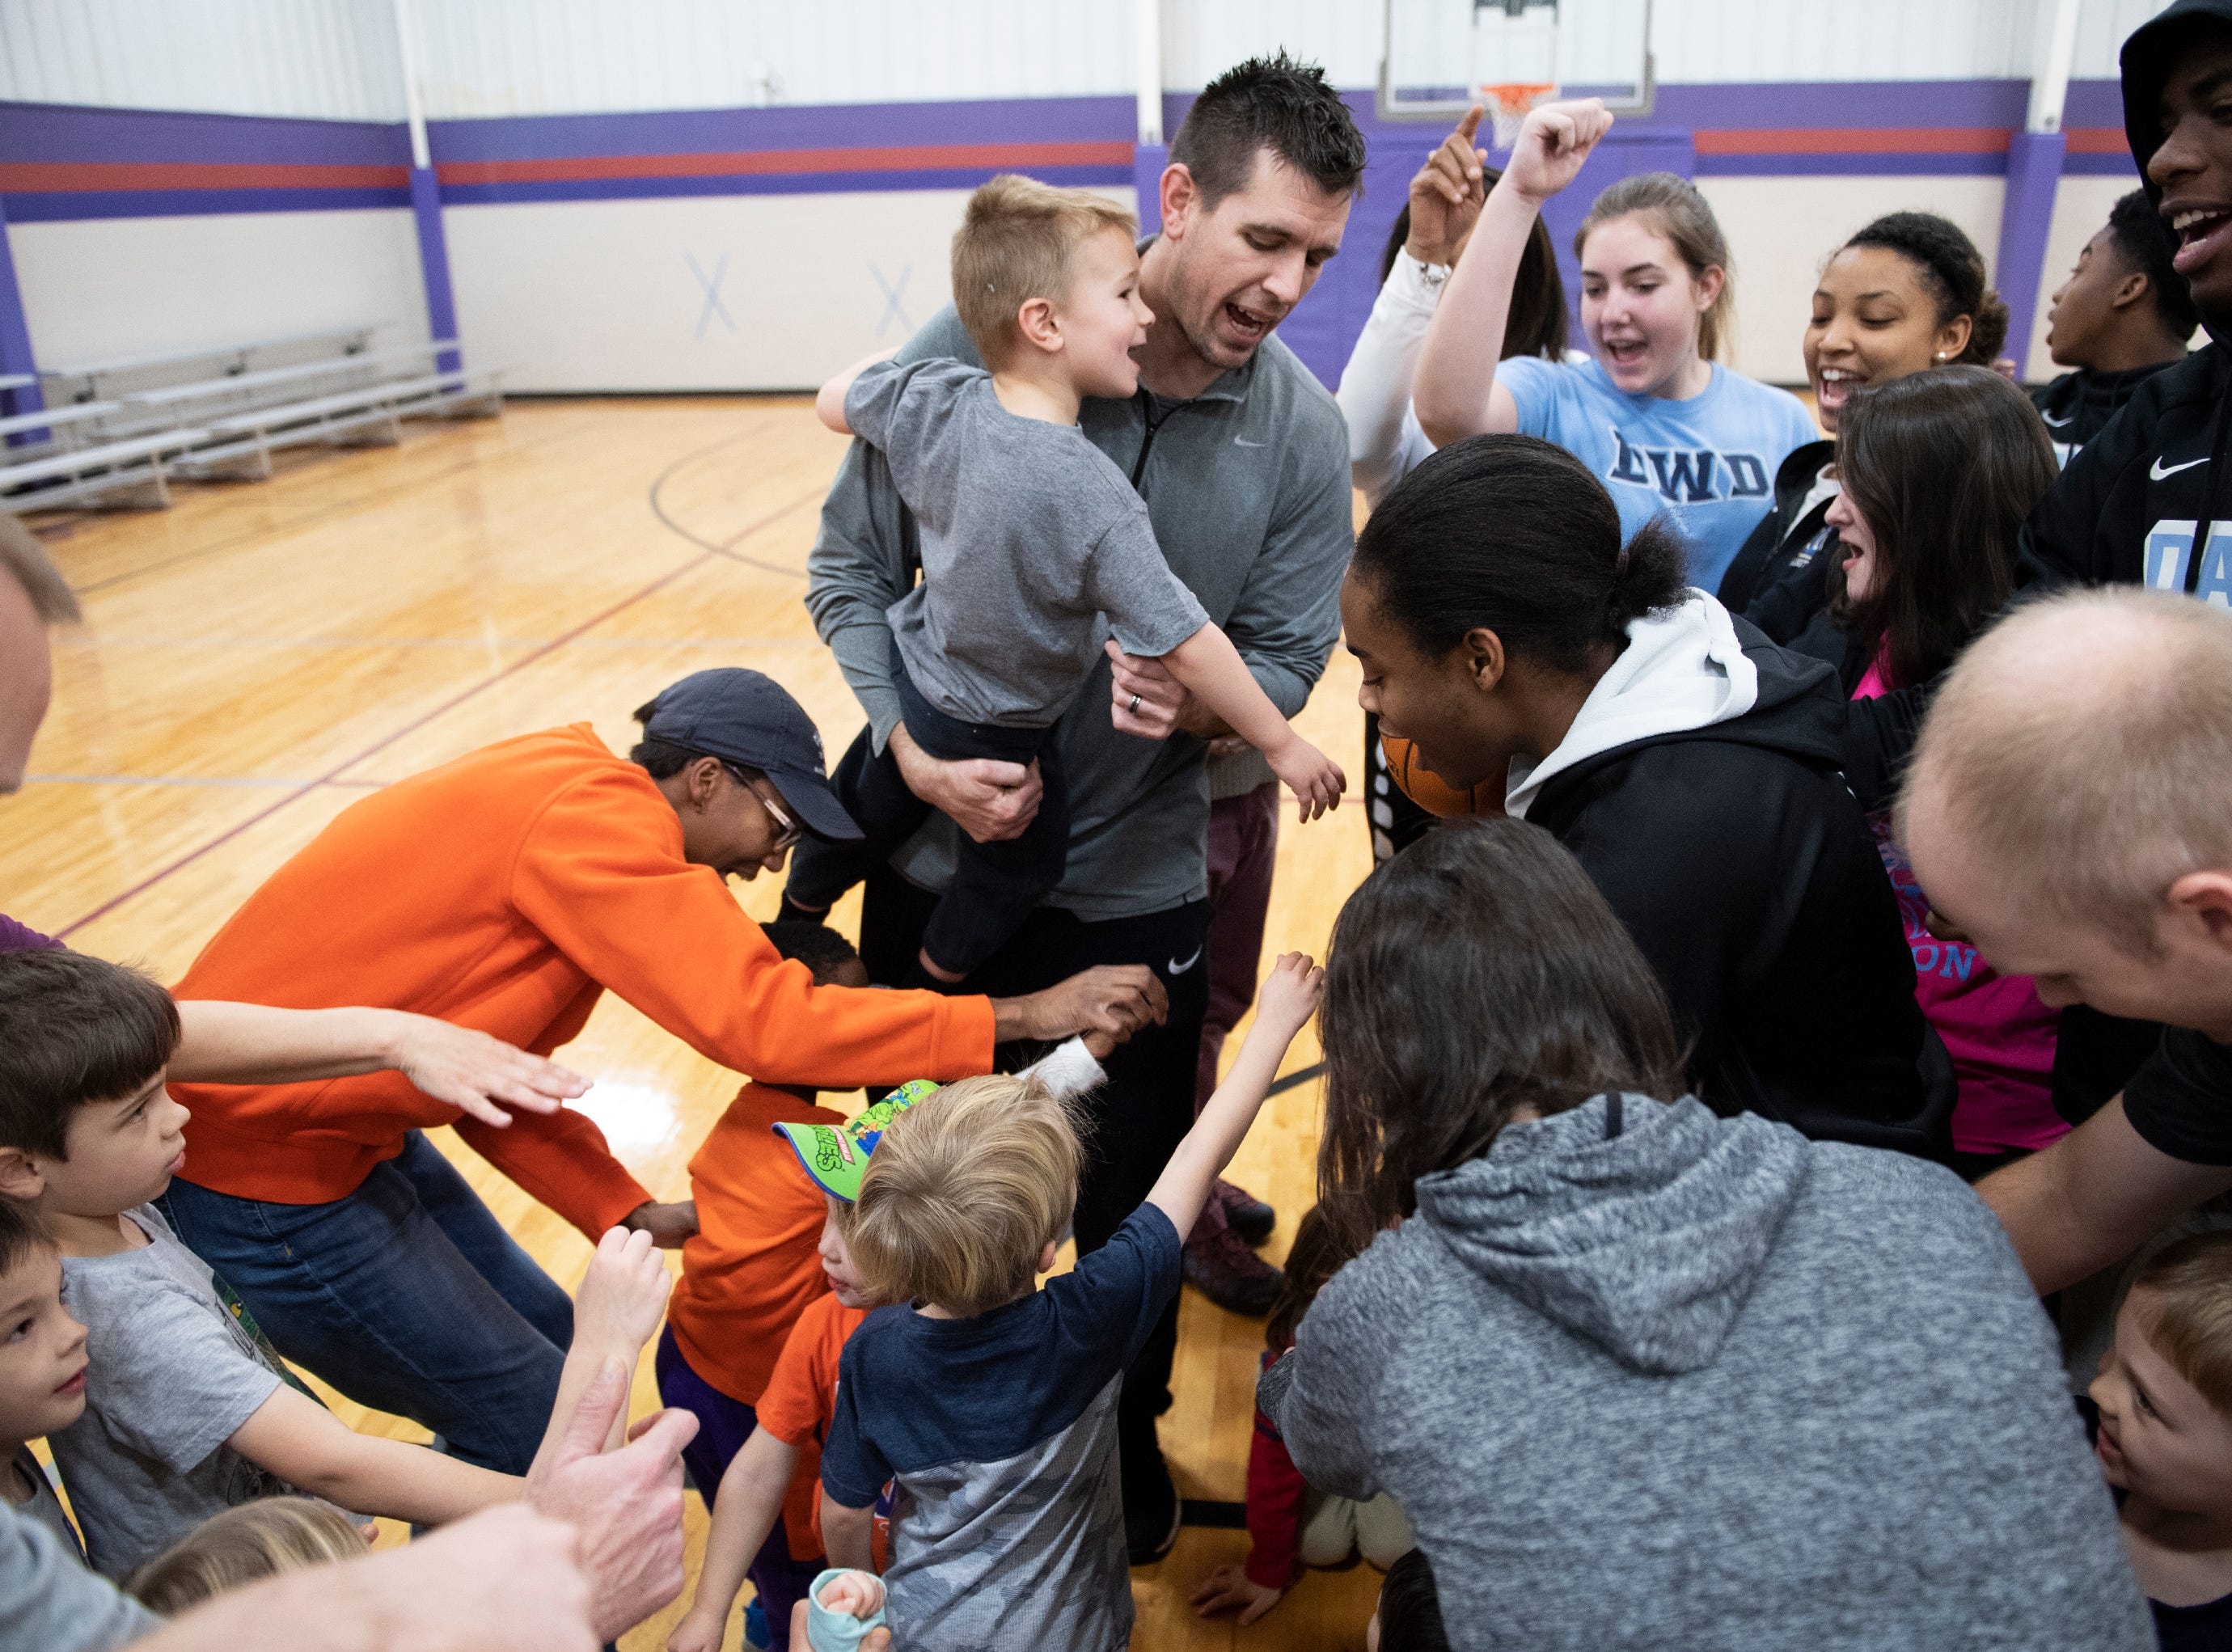 Ben Touchberry, head coach of D.W. Daniel High School boys basketball, leads a cheer for participants at the Smart Start Basketball program at Central-Clemson Recreational Center Saturday, Feb. 2, 2019.